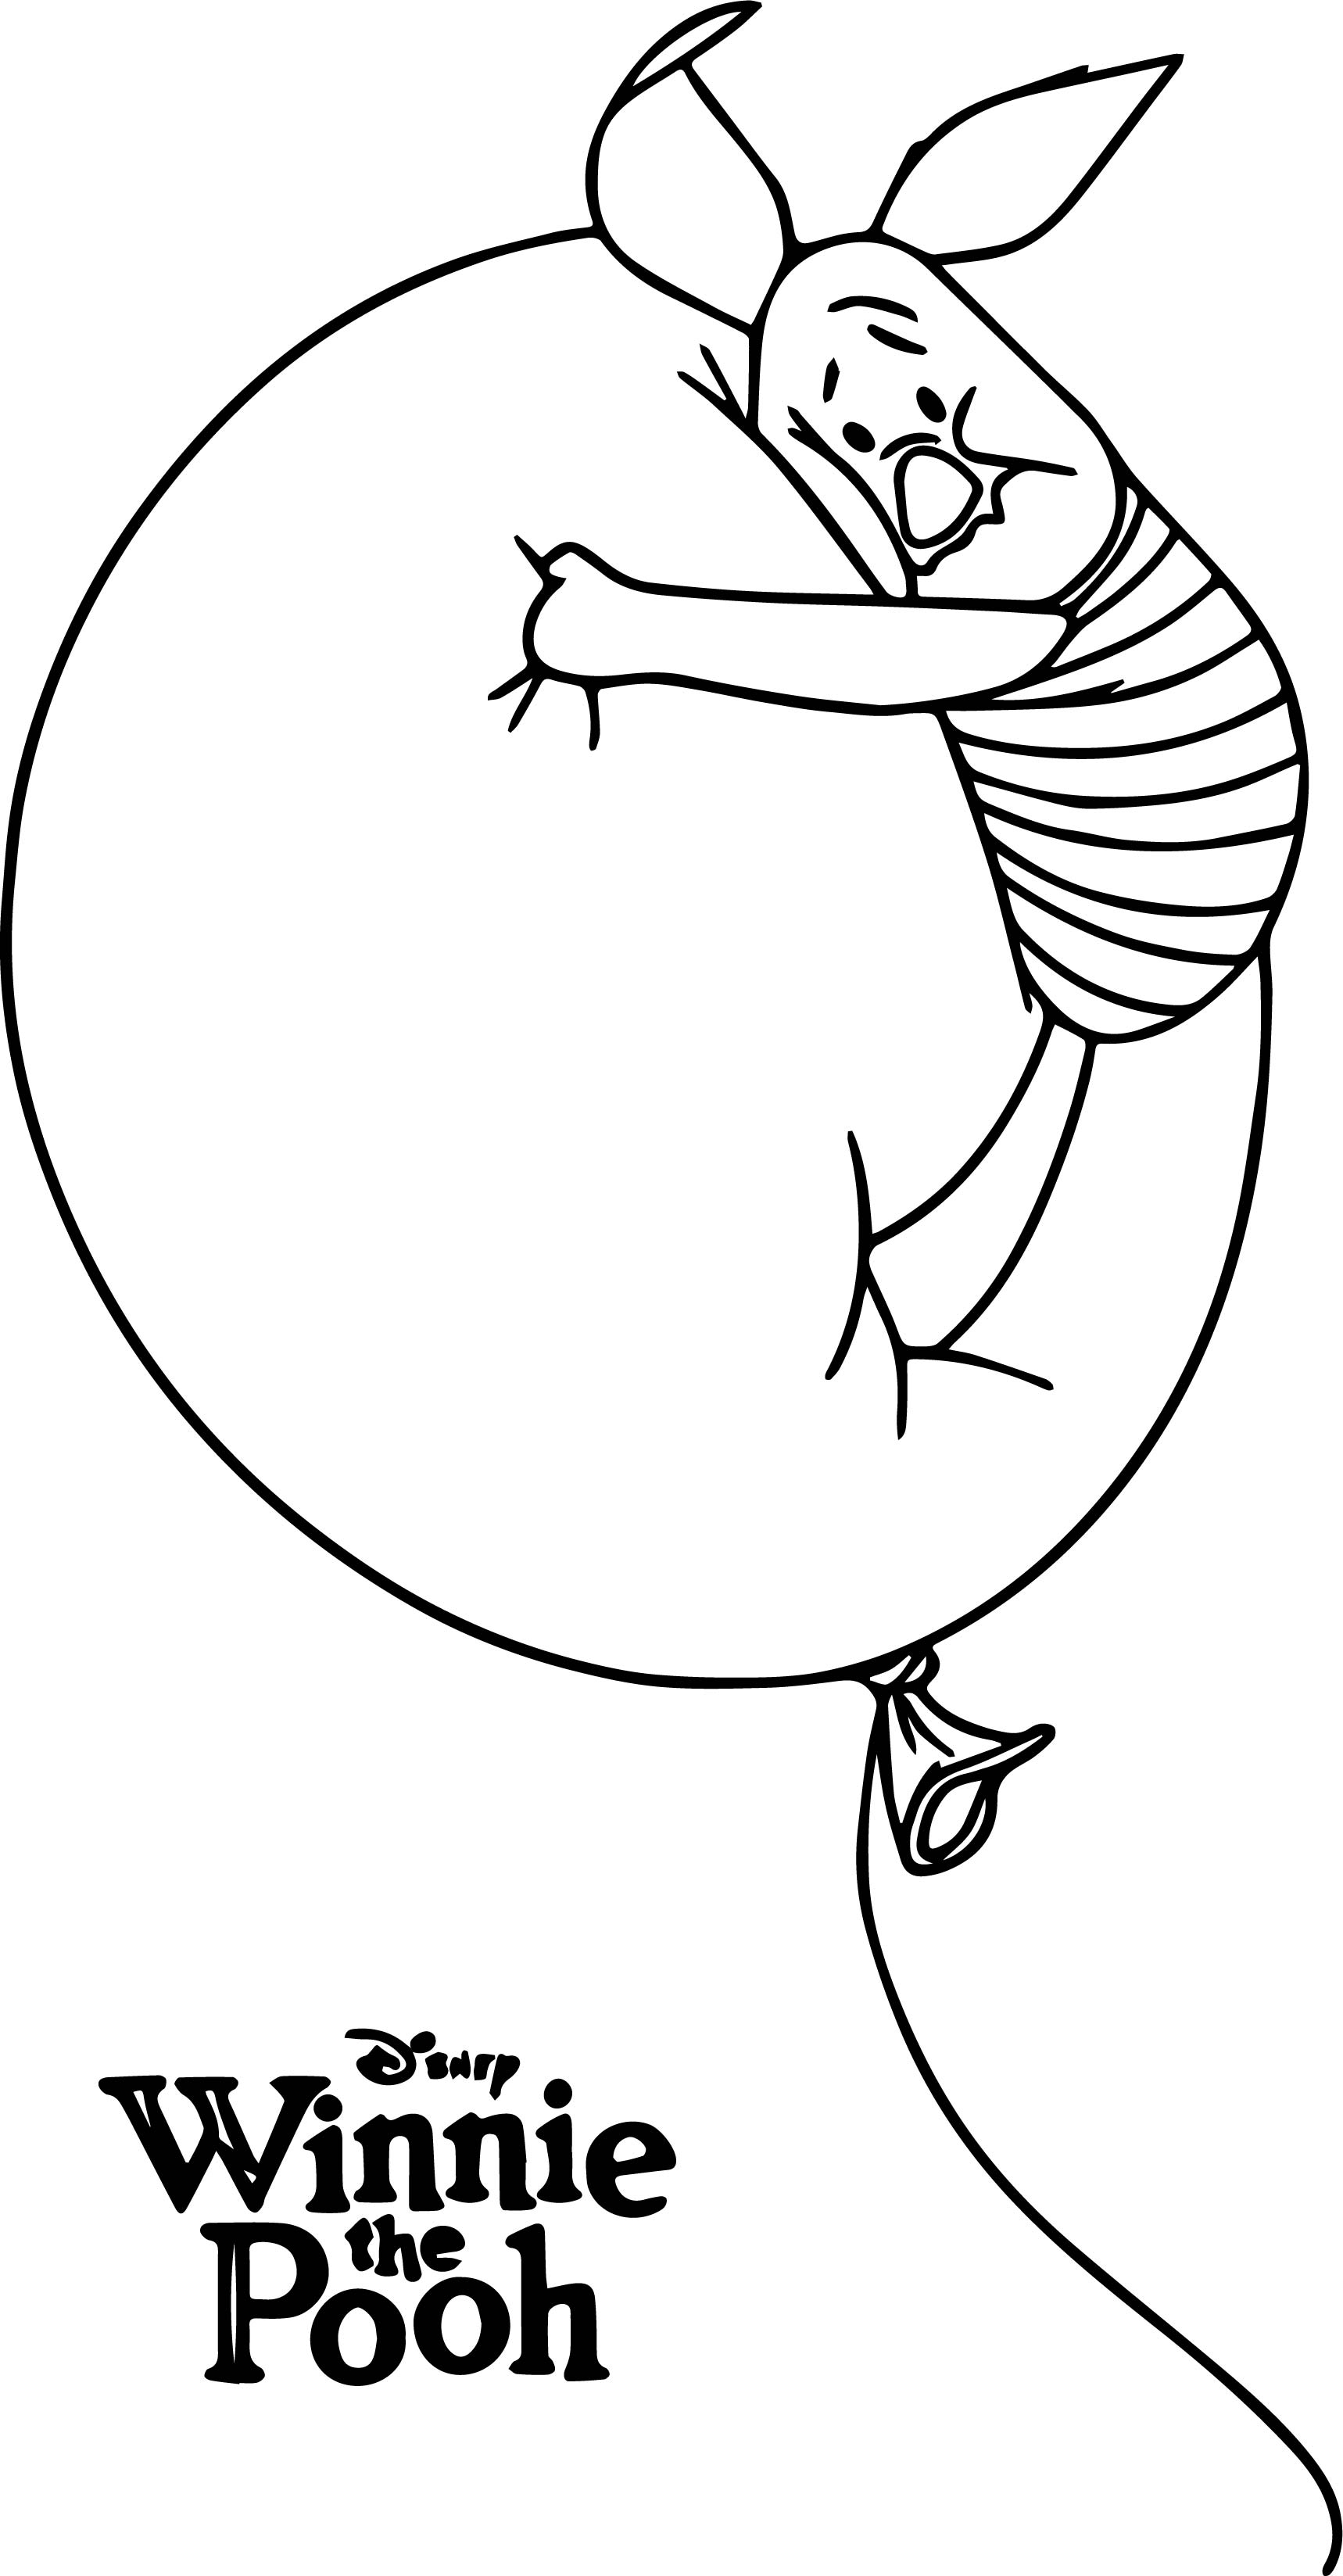 Winnie the pooh poster piglet coloring page for Piglet coloring pages